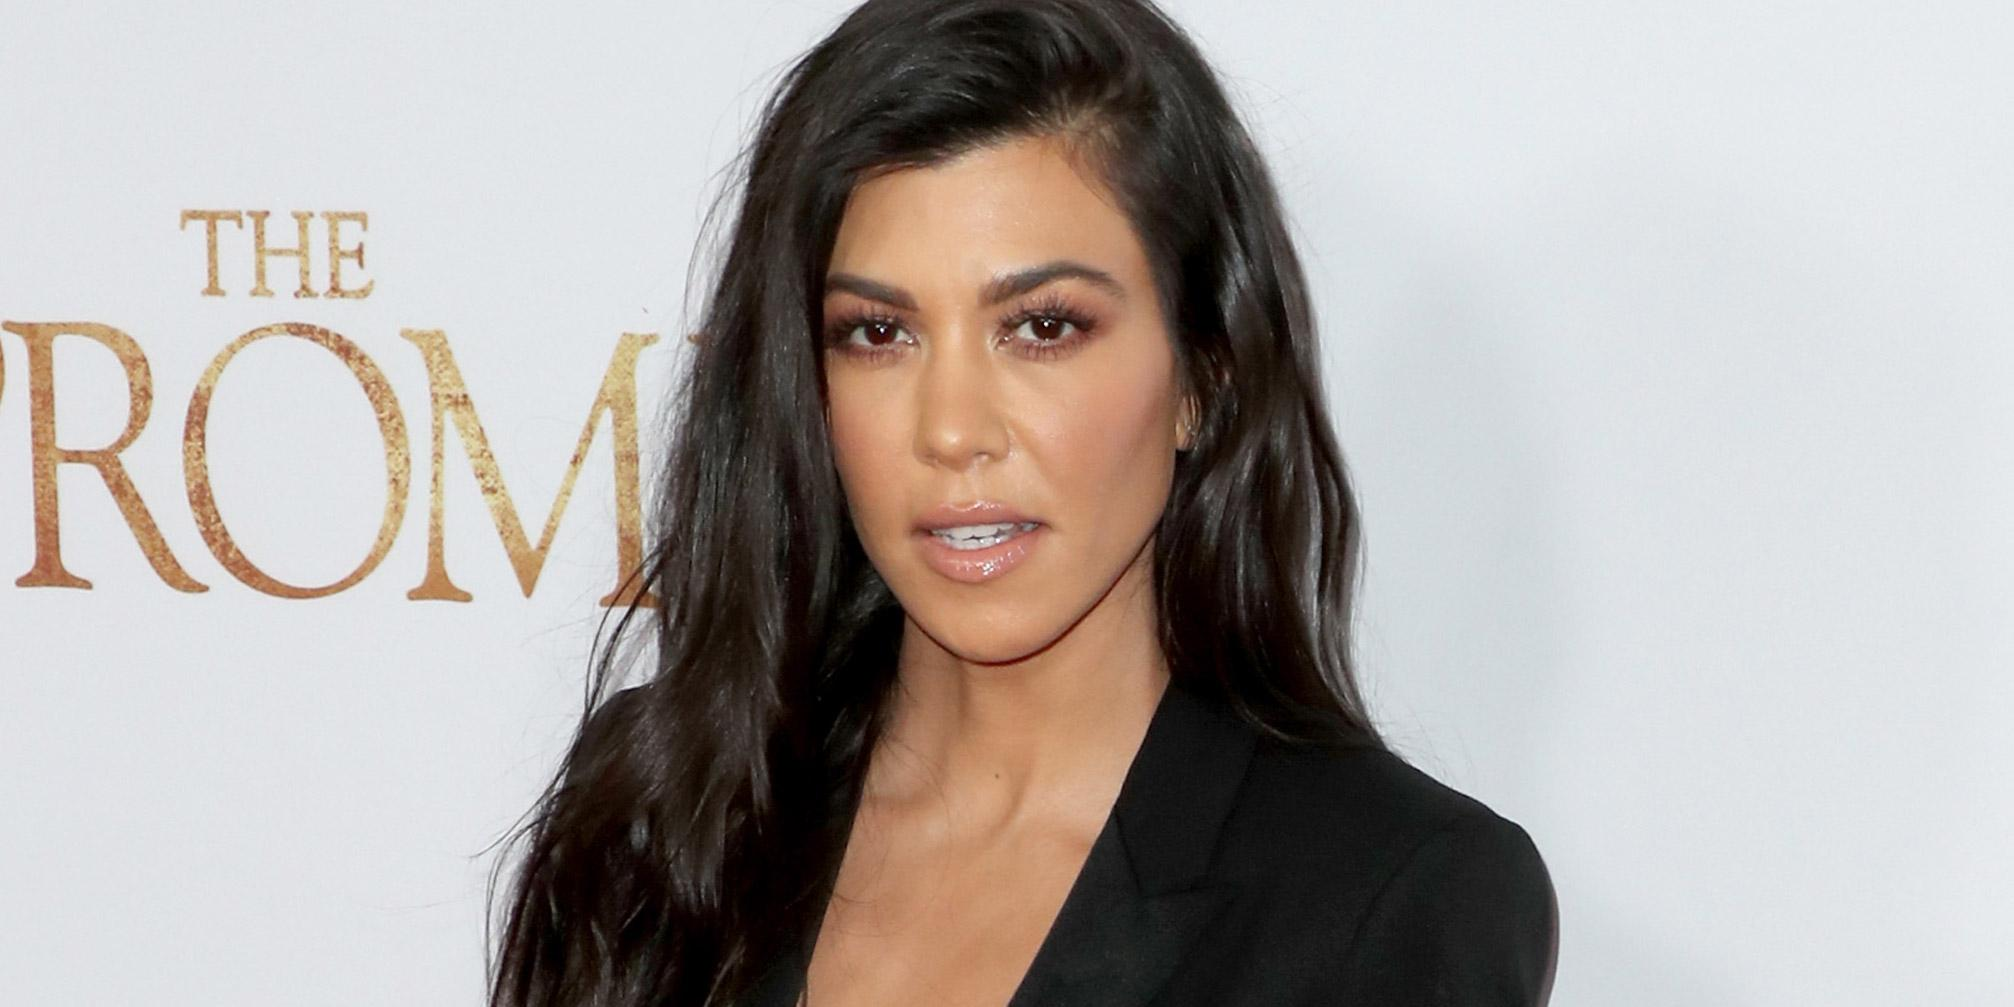 Kourtney Kardashian might be pregnant and everyone is making the same joke